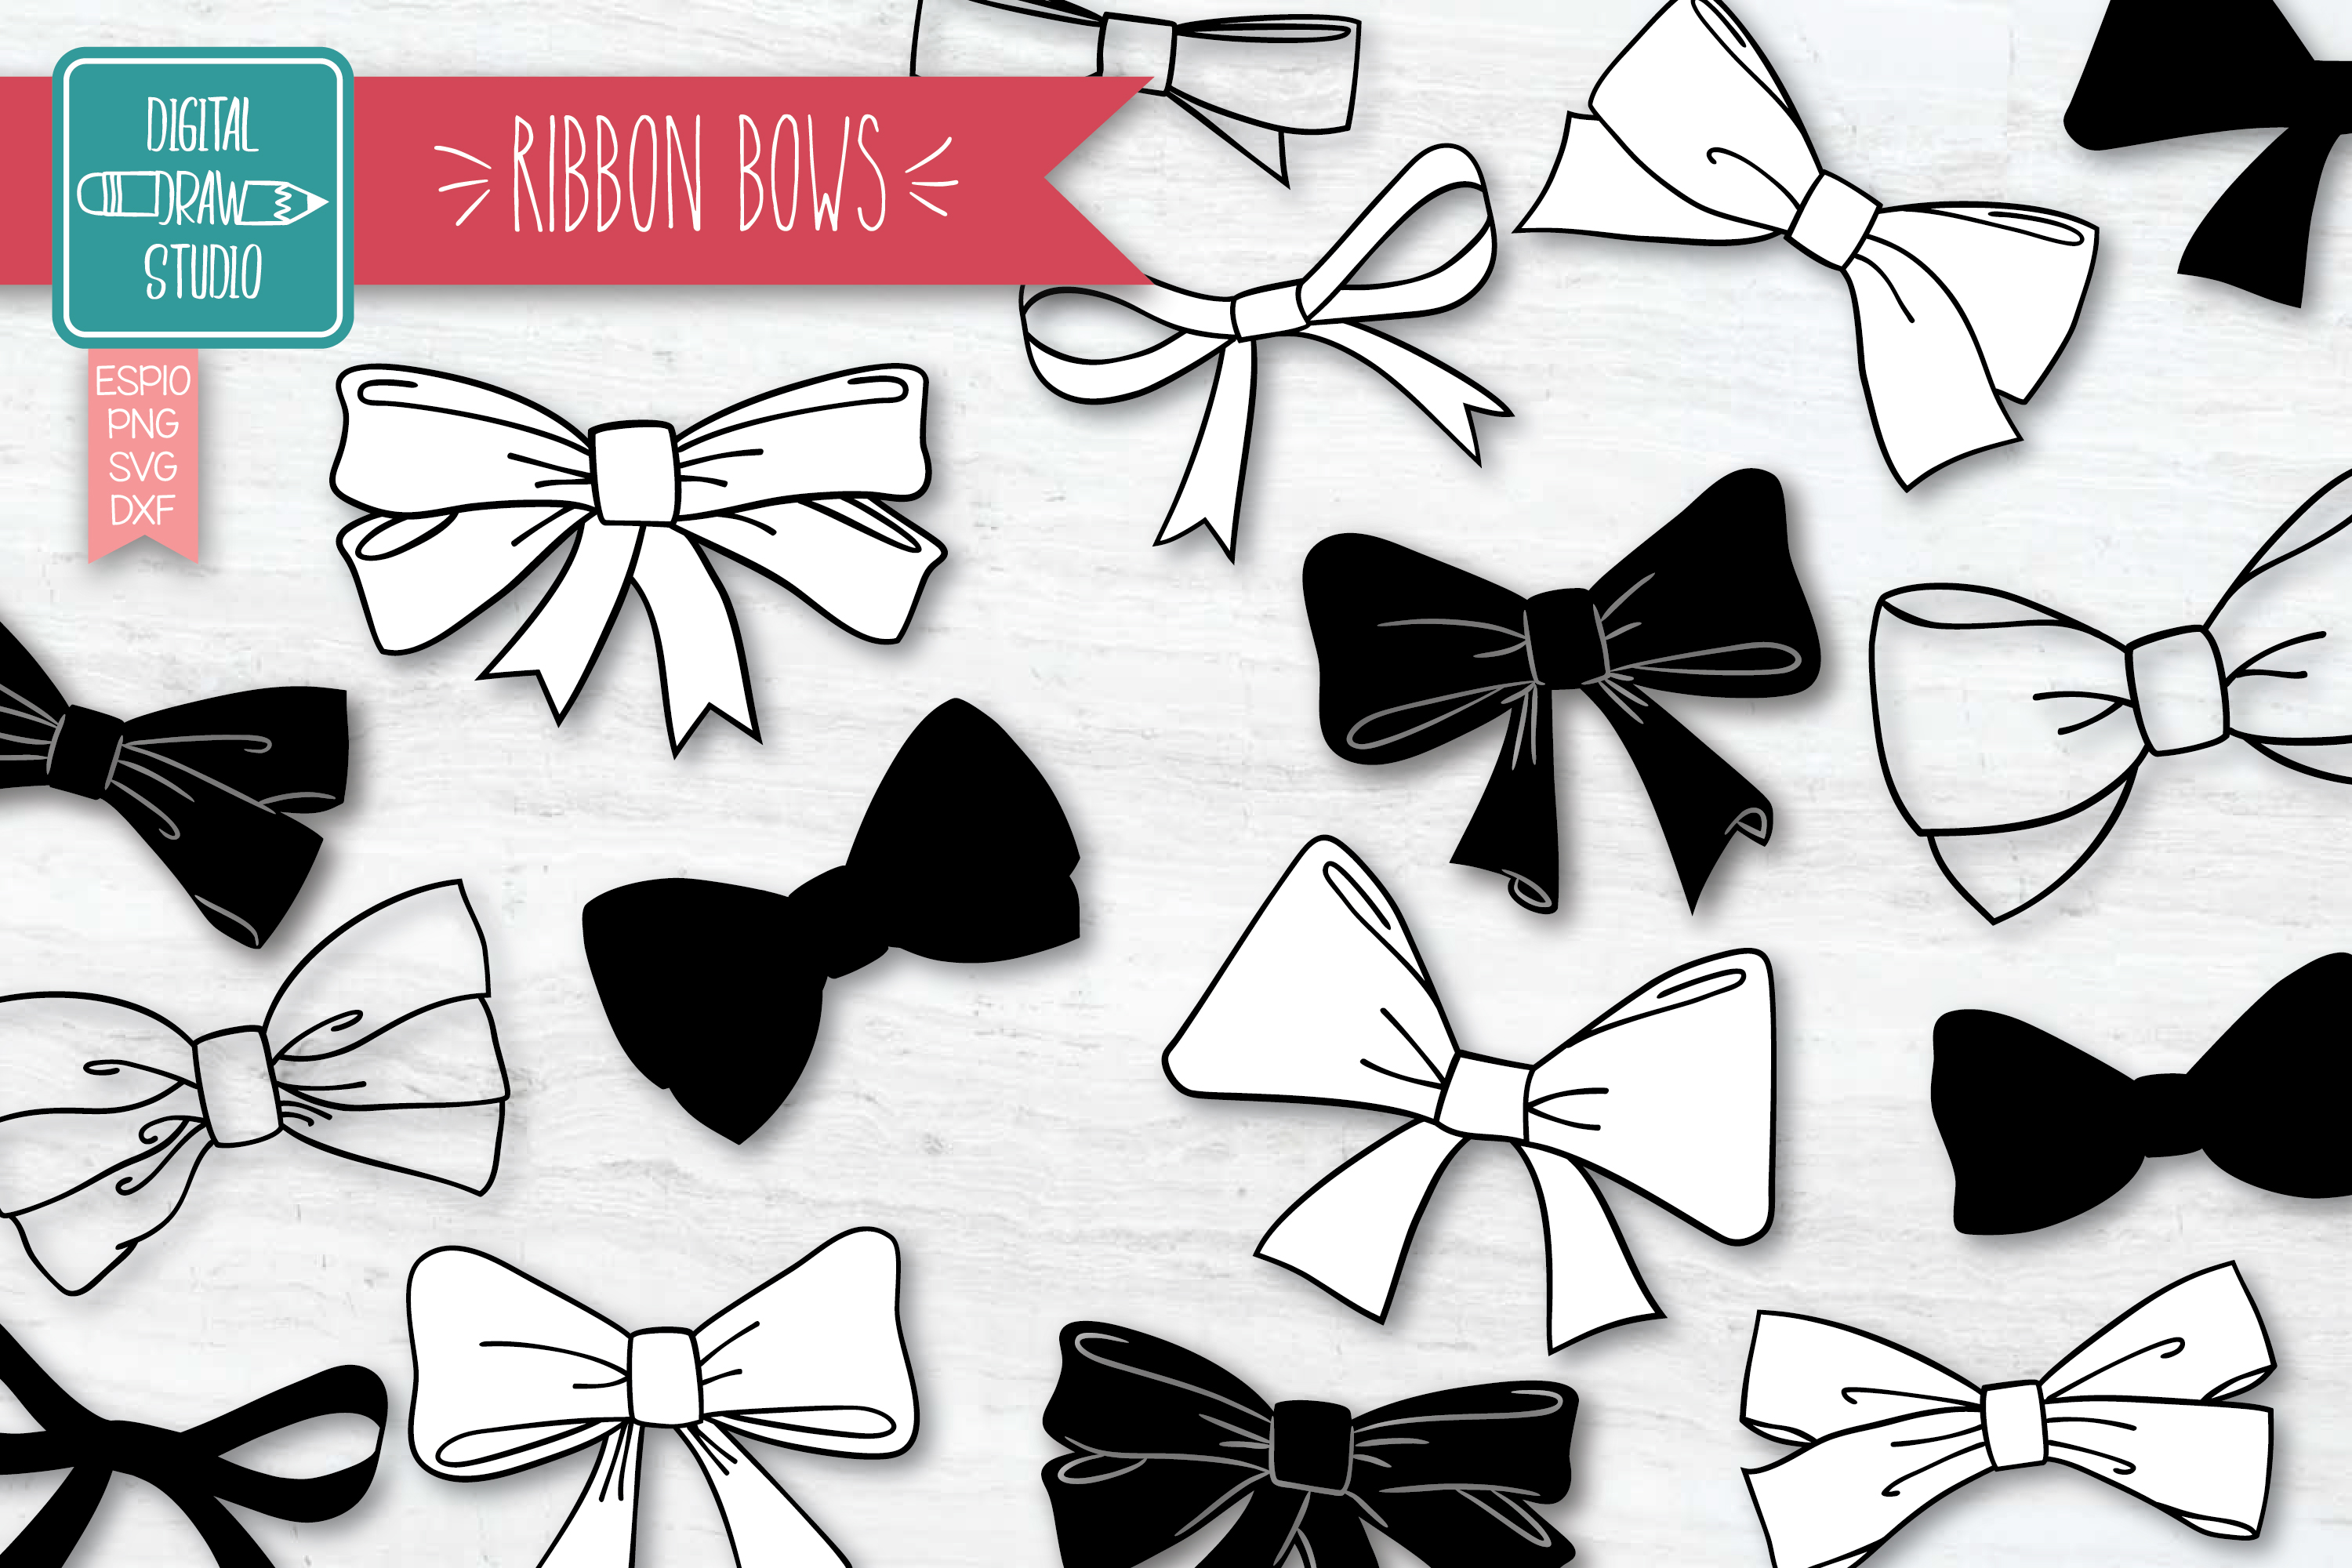 Download Free Hand Drawn Ribbon Bow Tie Illustration Graphic By for Cricut Explore, Silhouette and other cutting machines.